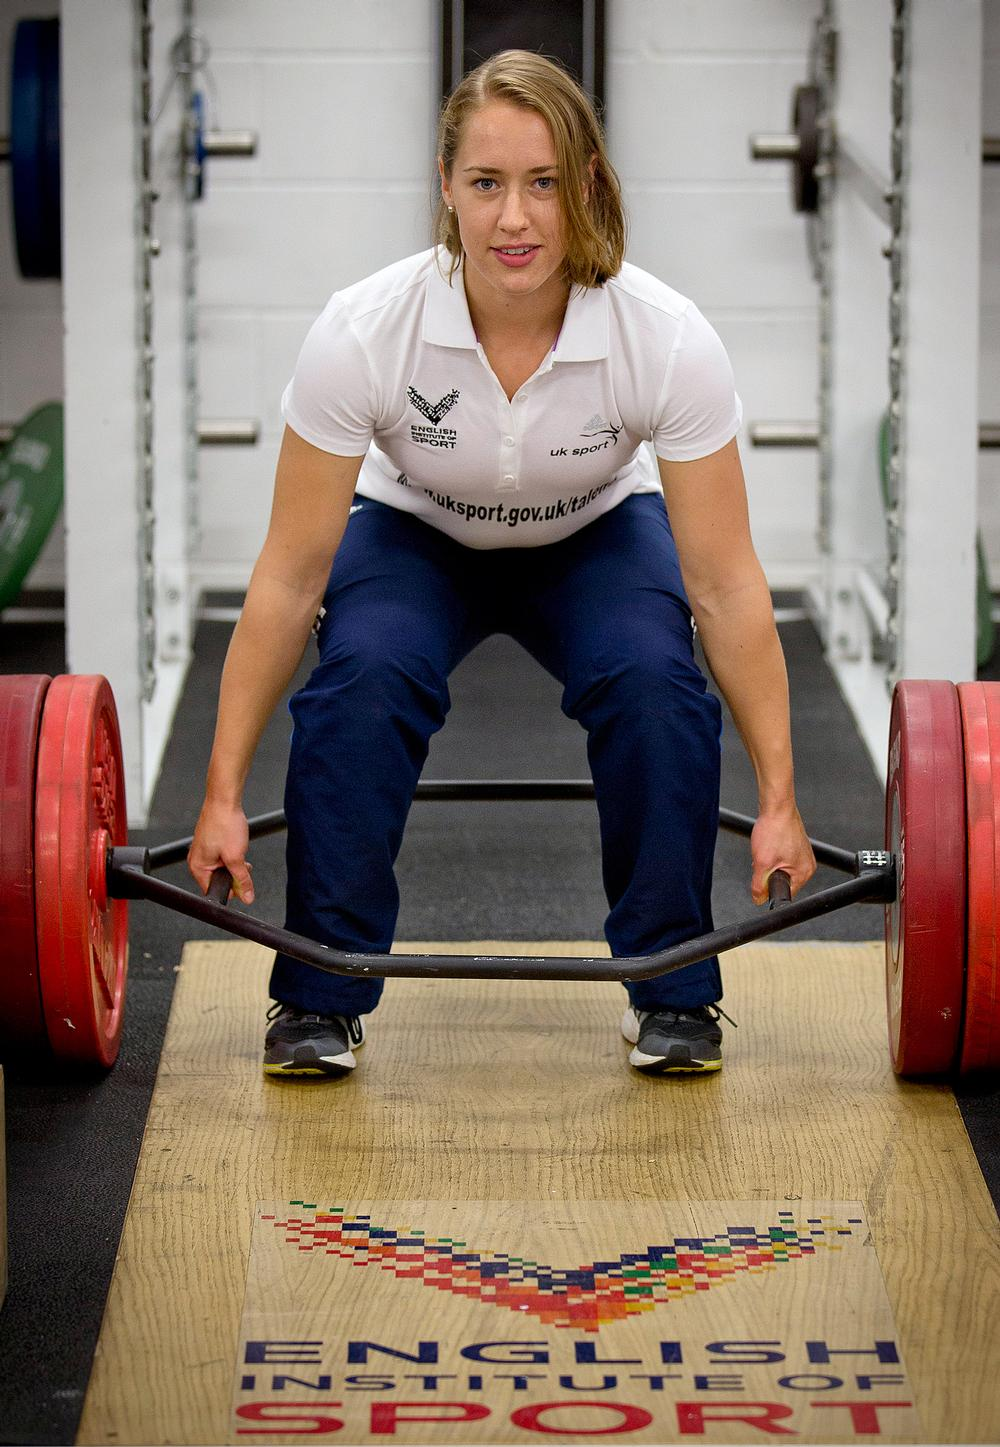 The EIS helped to identify Lizzie Yarnold and worked with her to prepare for Sochi 2014